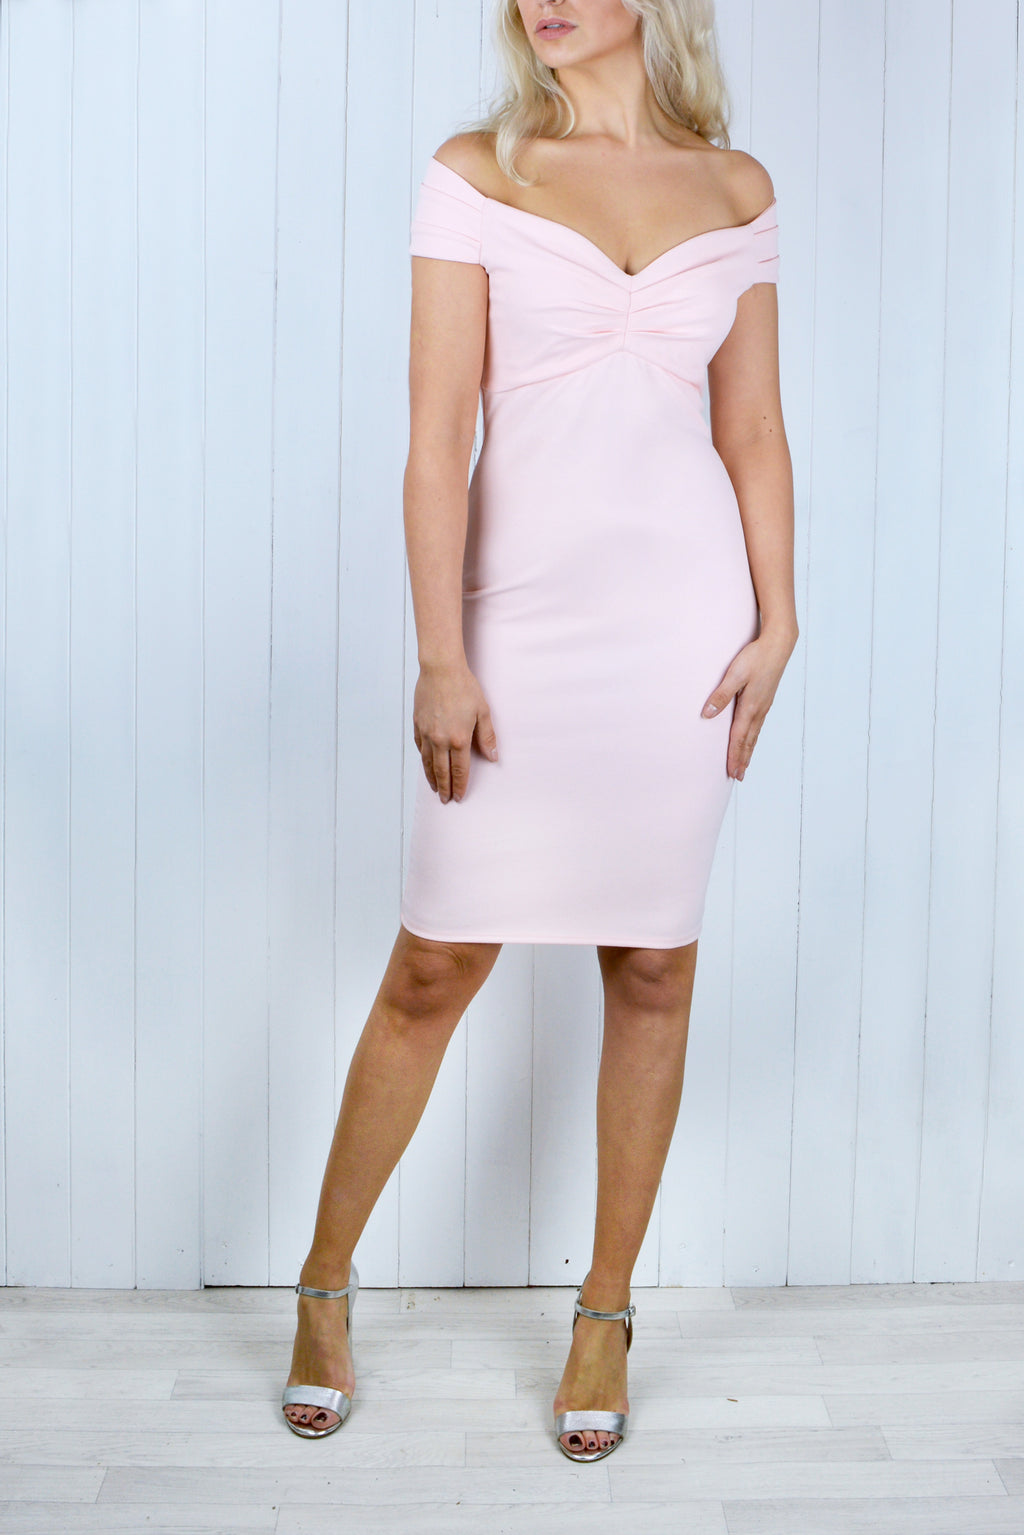 Charlotte Sweetheart Neckline Blush Pink Dress